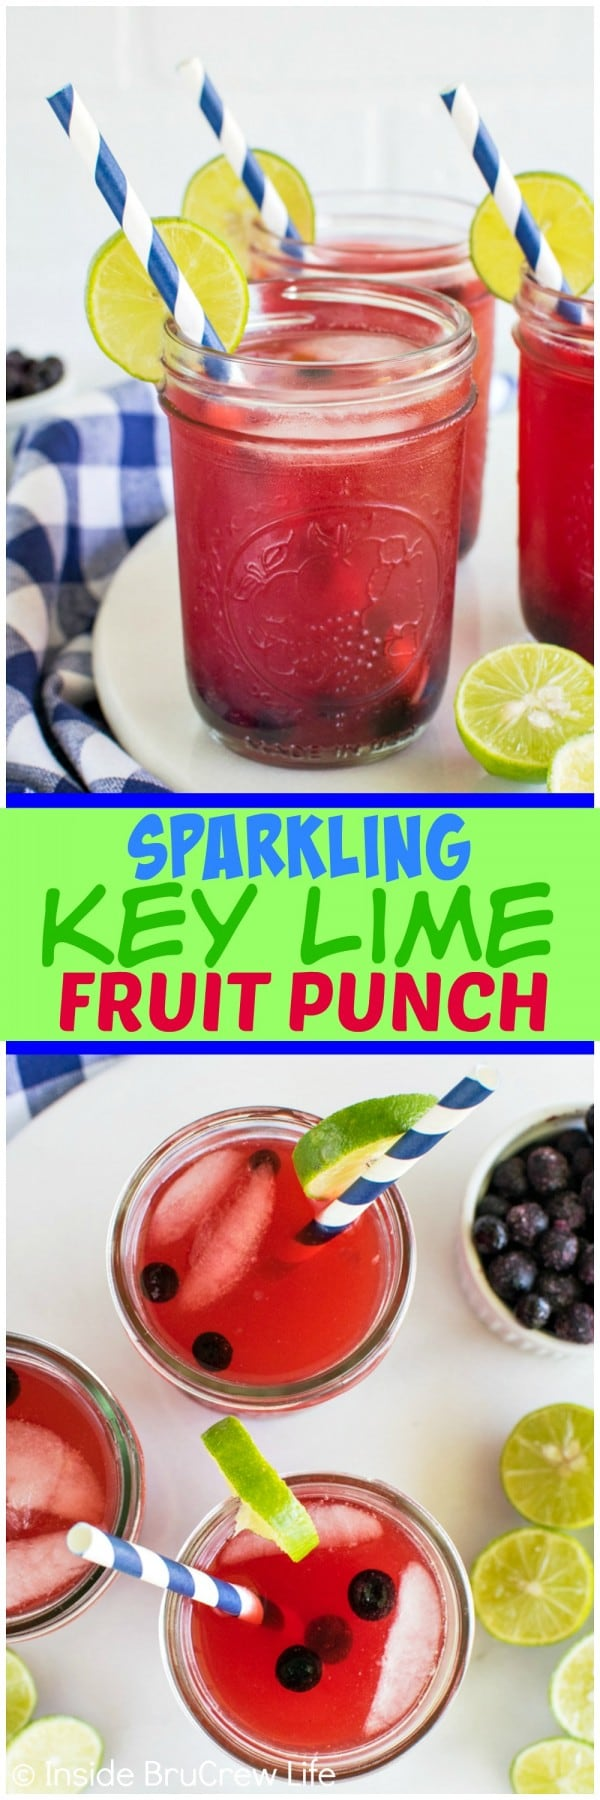 Sparkling Key Lime Fruit Punch - key lime juice and fruit punch makes a refreshing drink on a hot summer day! Awesome punch recipe!